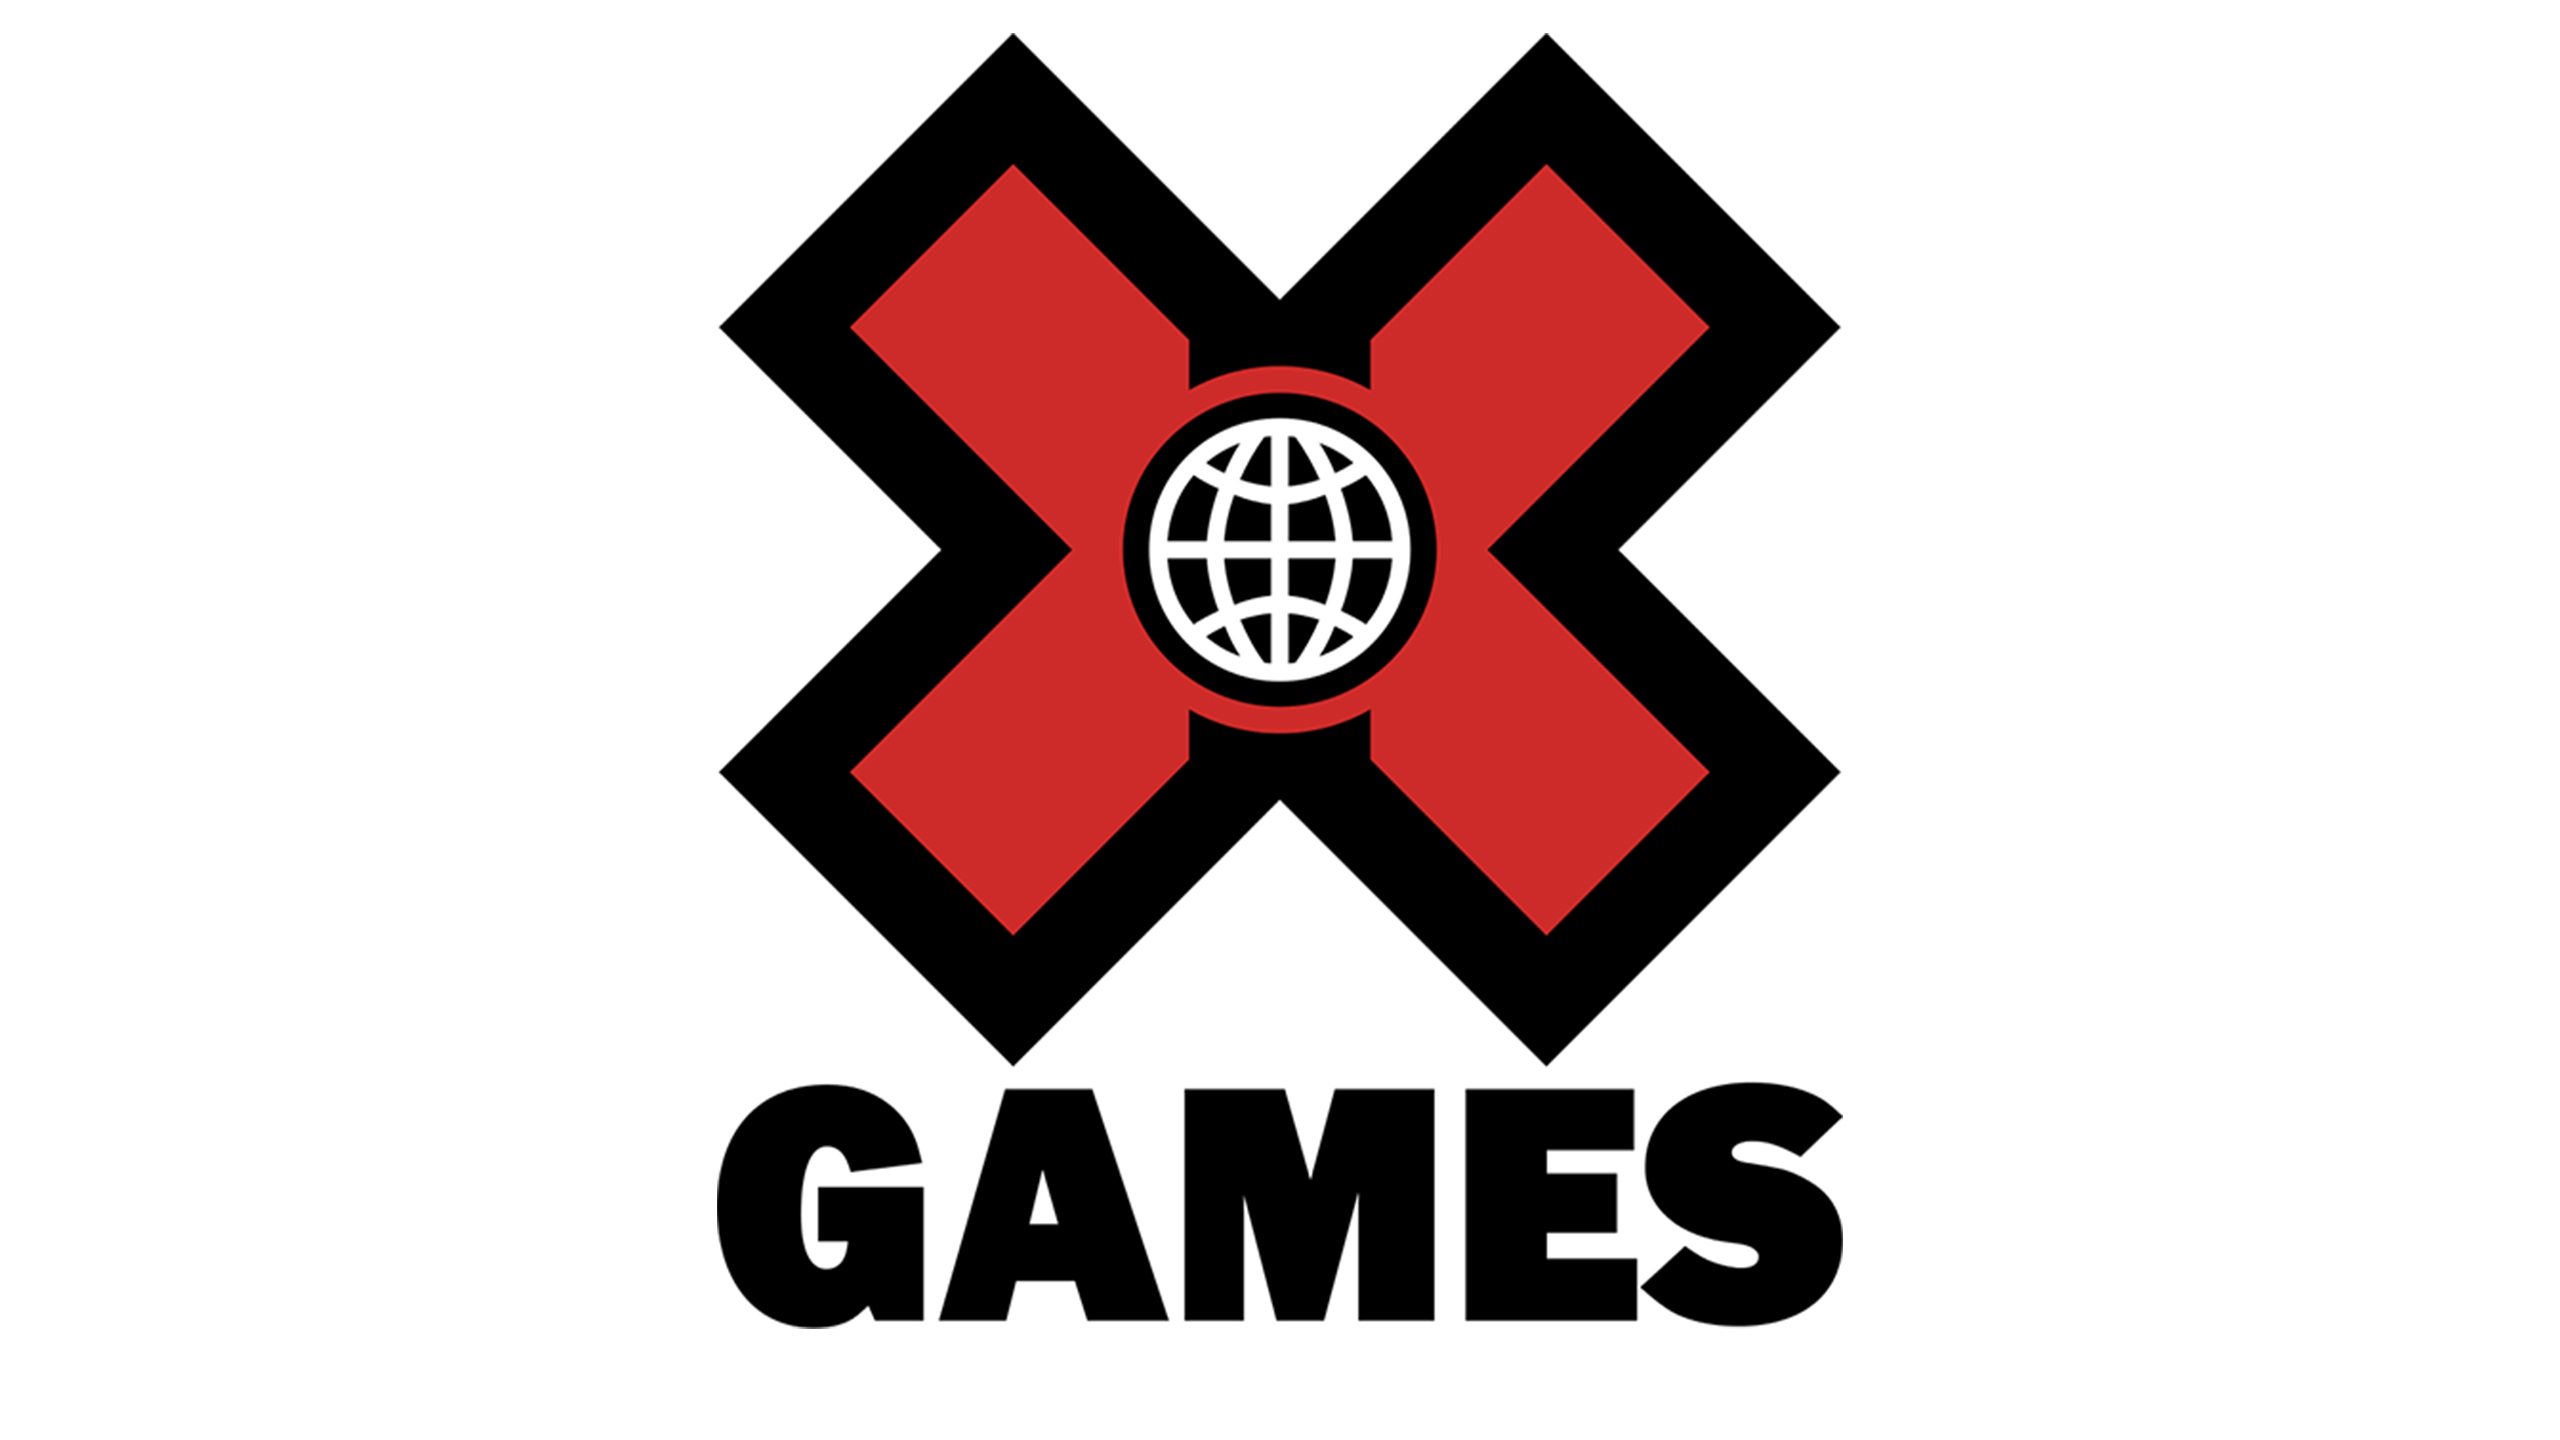 World of X Games: Being, Vol. 3